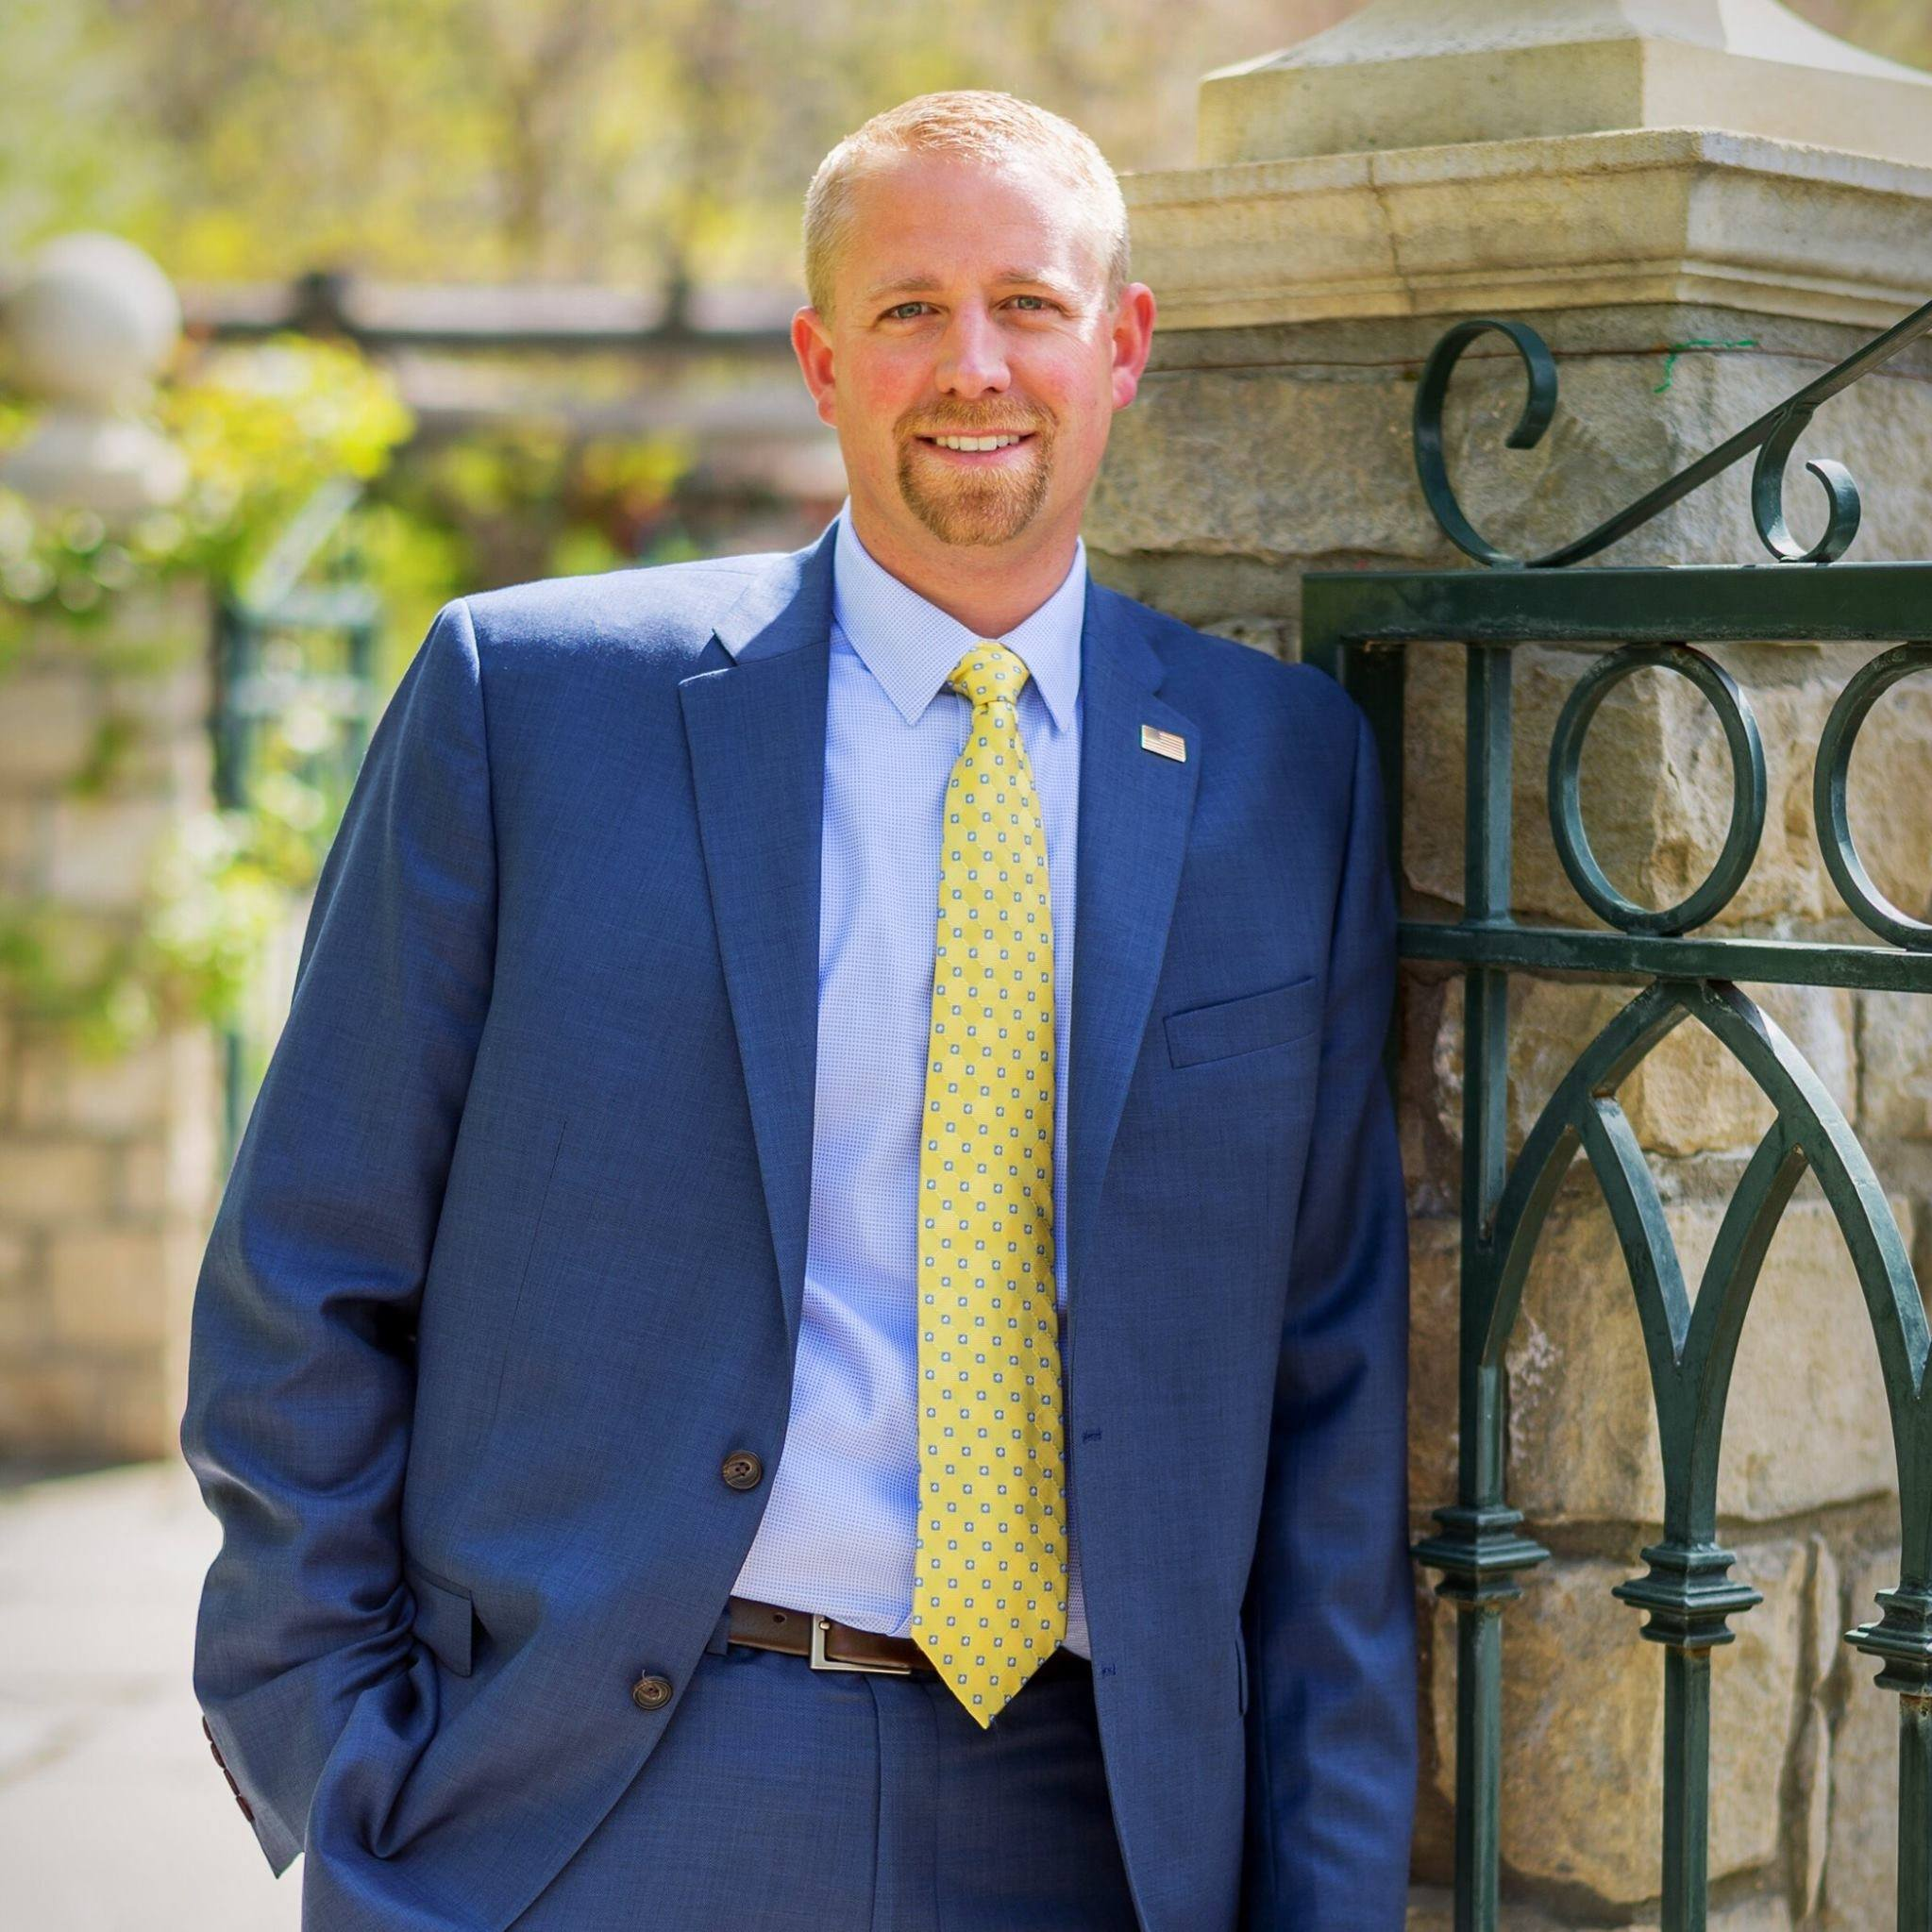 Clay Long, City of Nampa Chief of Staff